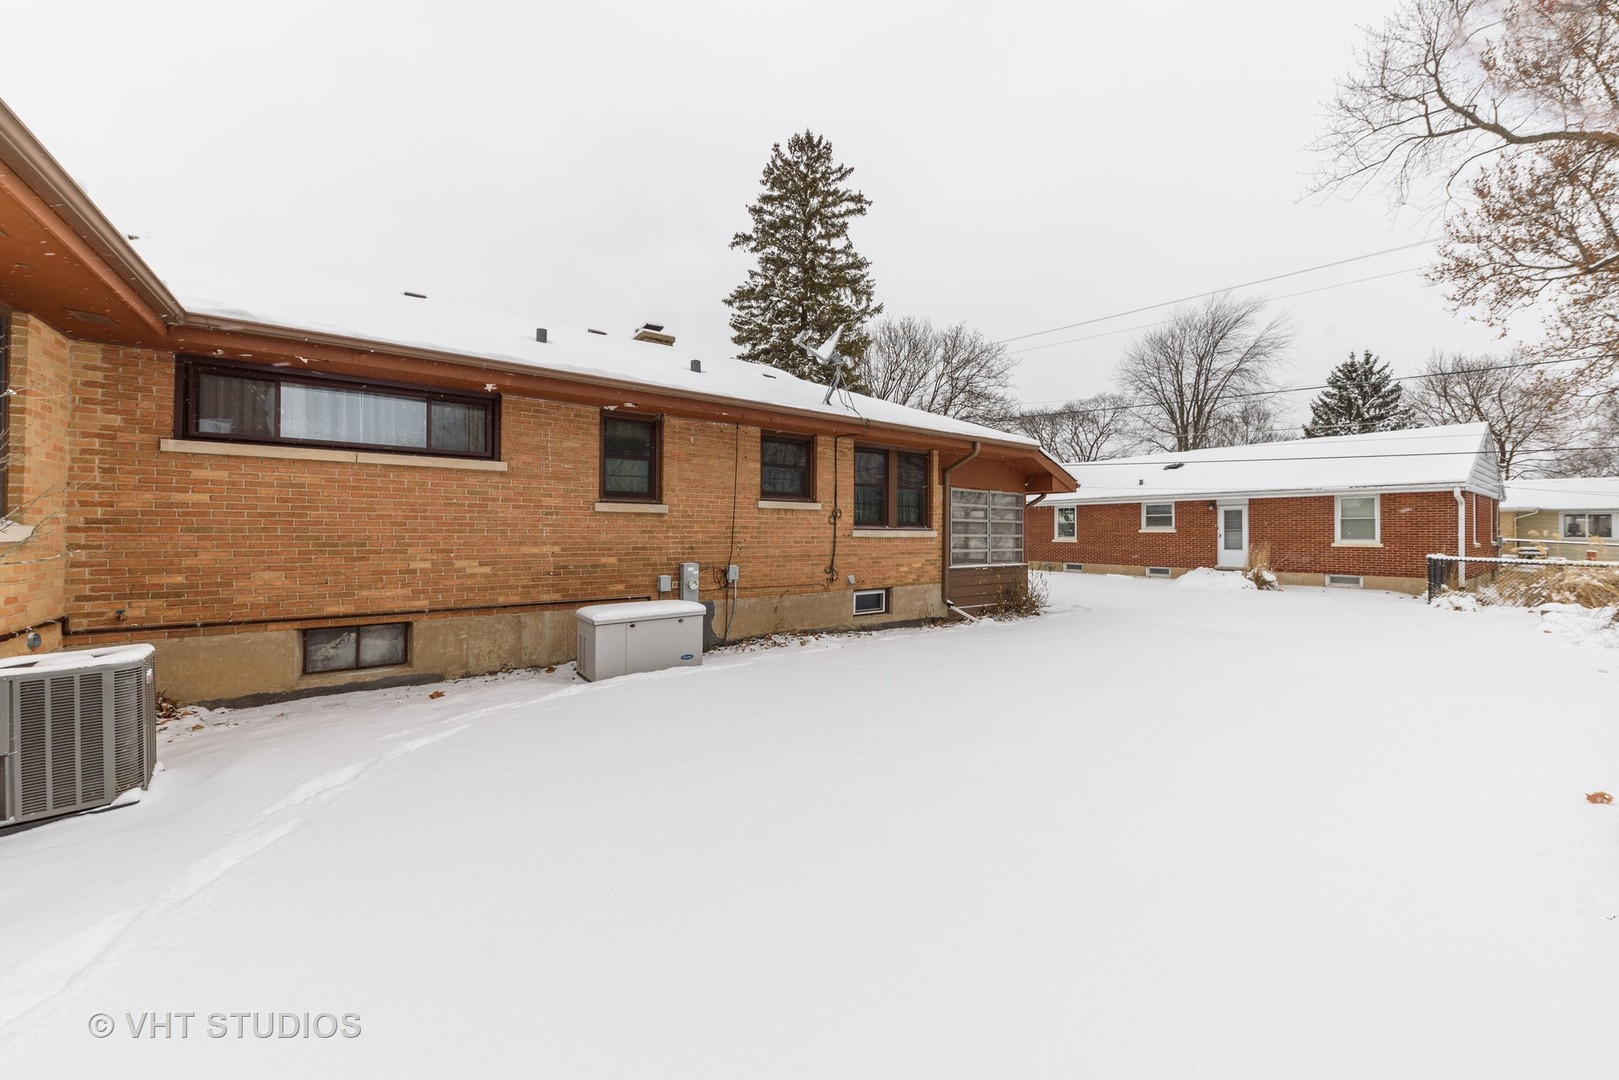 906 West Lincoln, Mount Prospect, Illinois, 60056